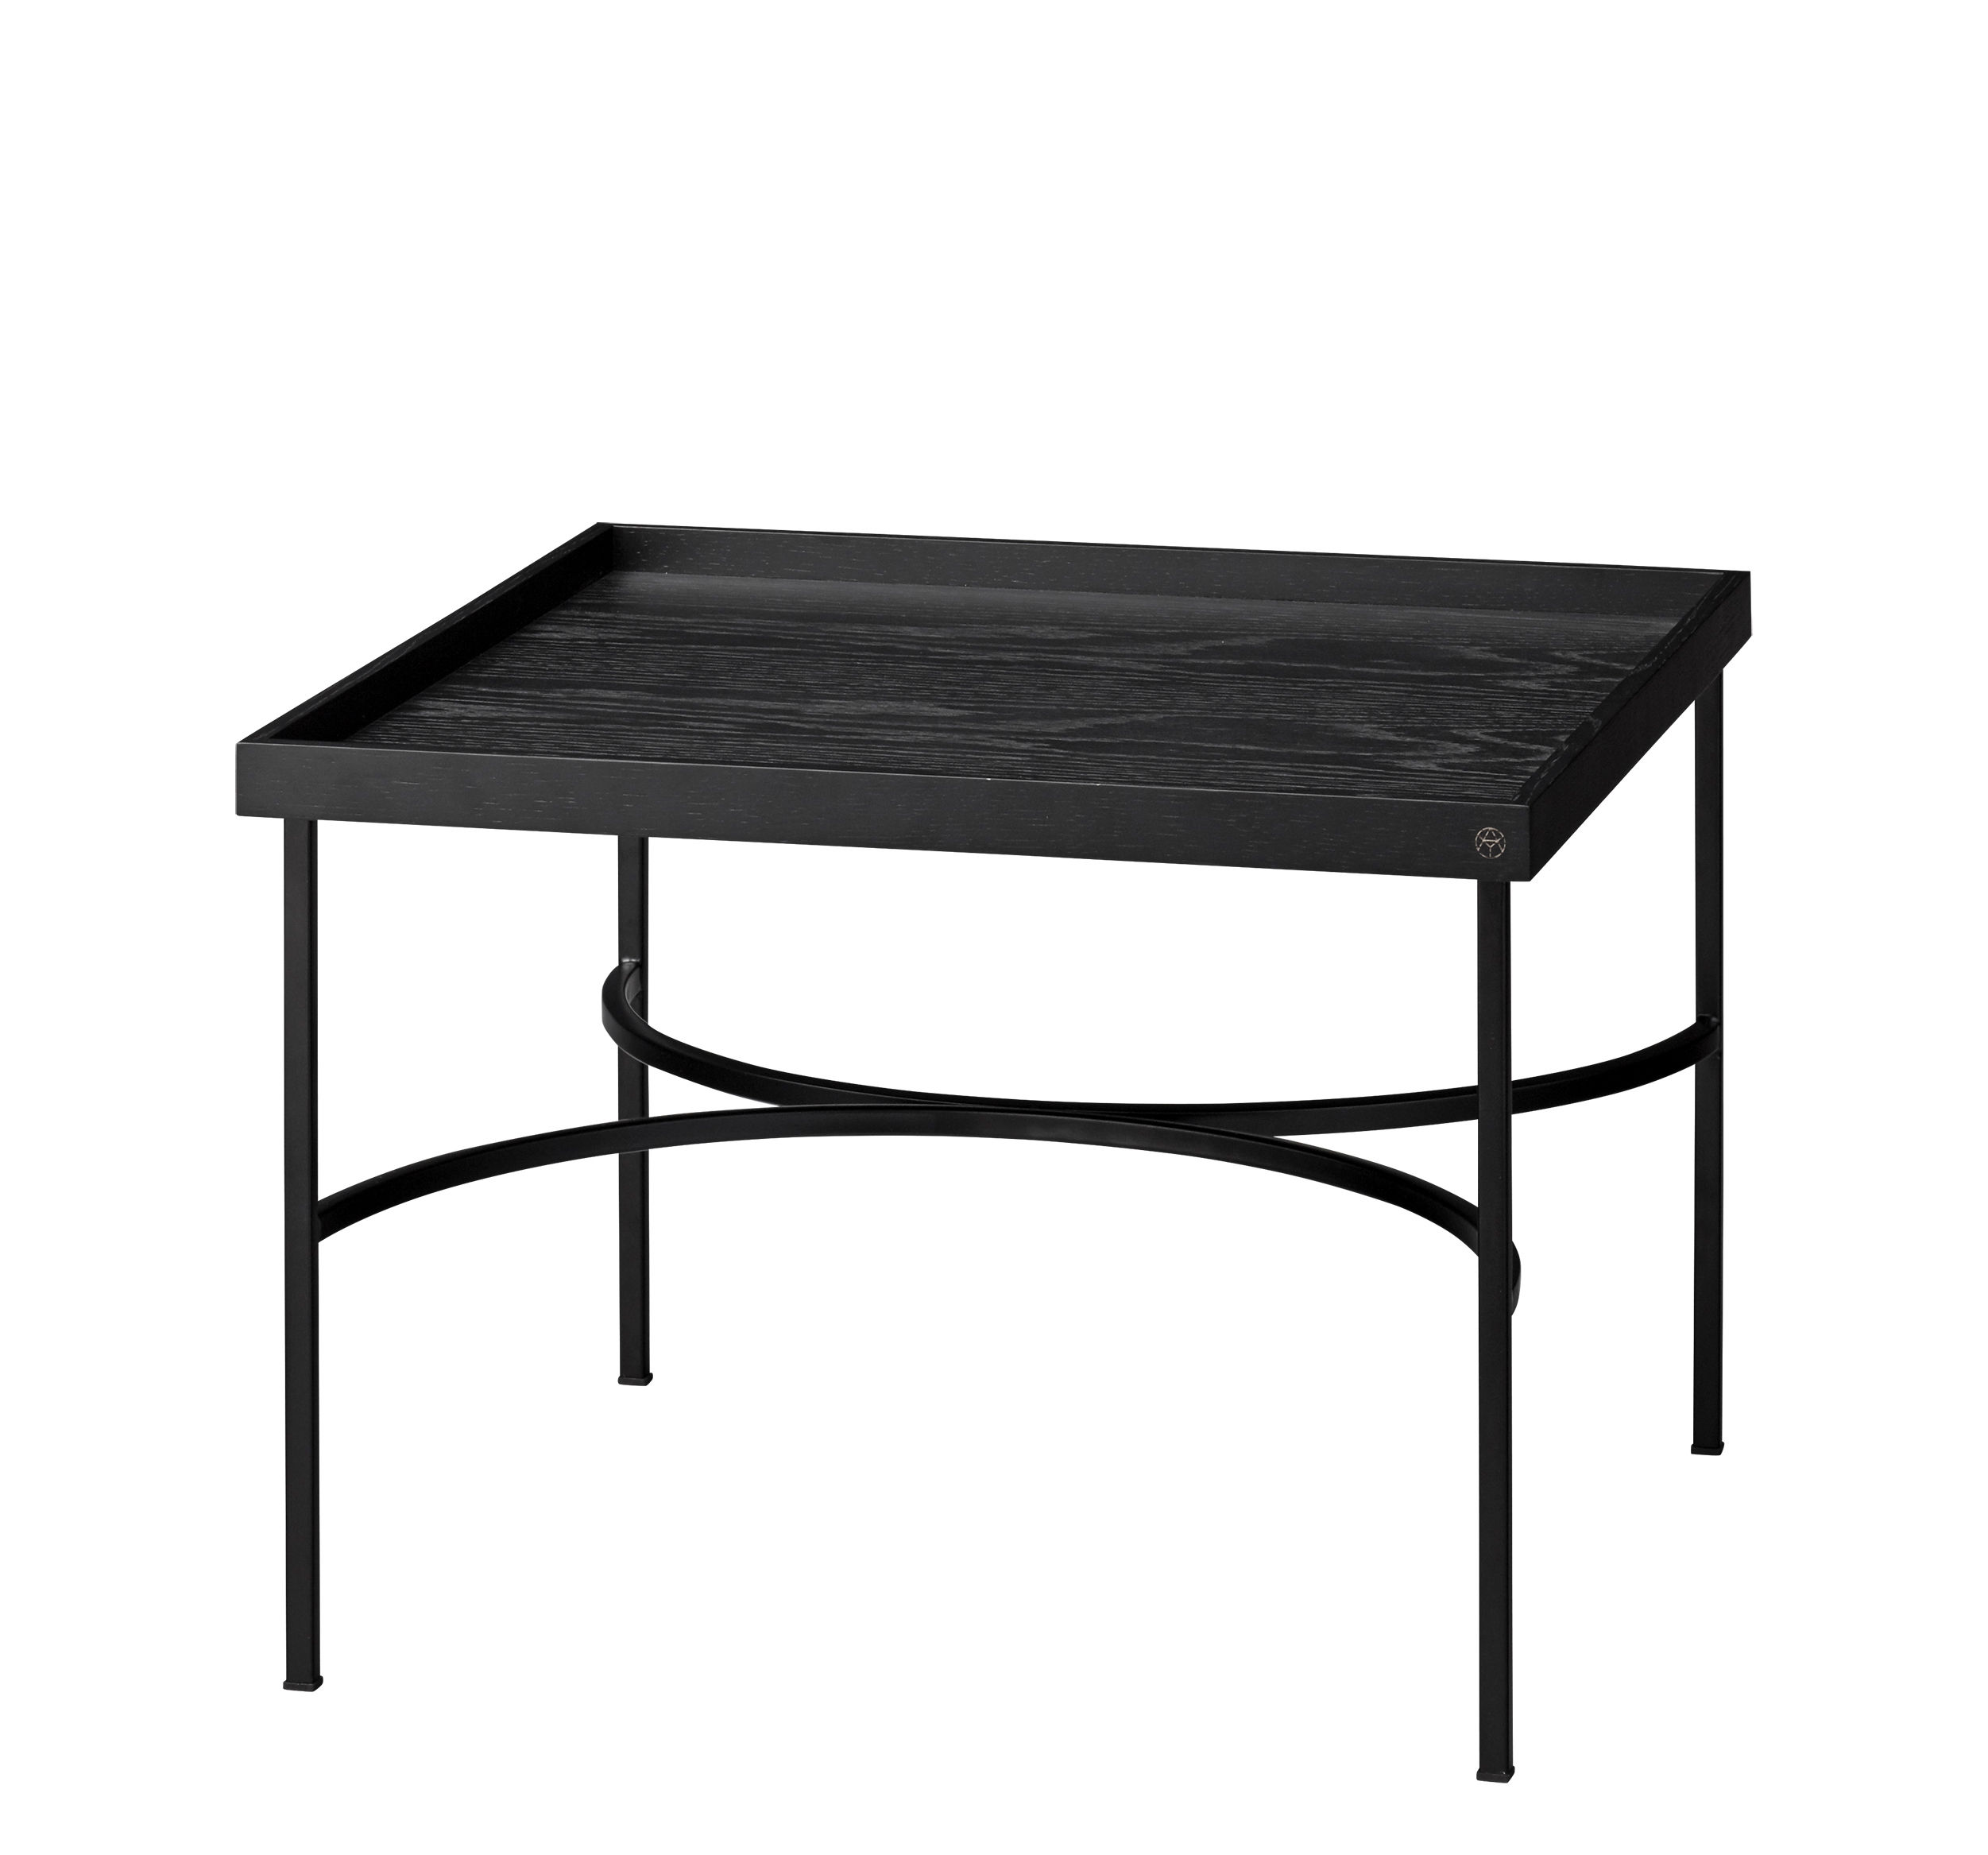 Furniture - Coffee Tables - Unity Coffee table - / Oak & iron by AYTM - Black - Lacquered iron, Oak